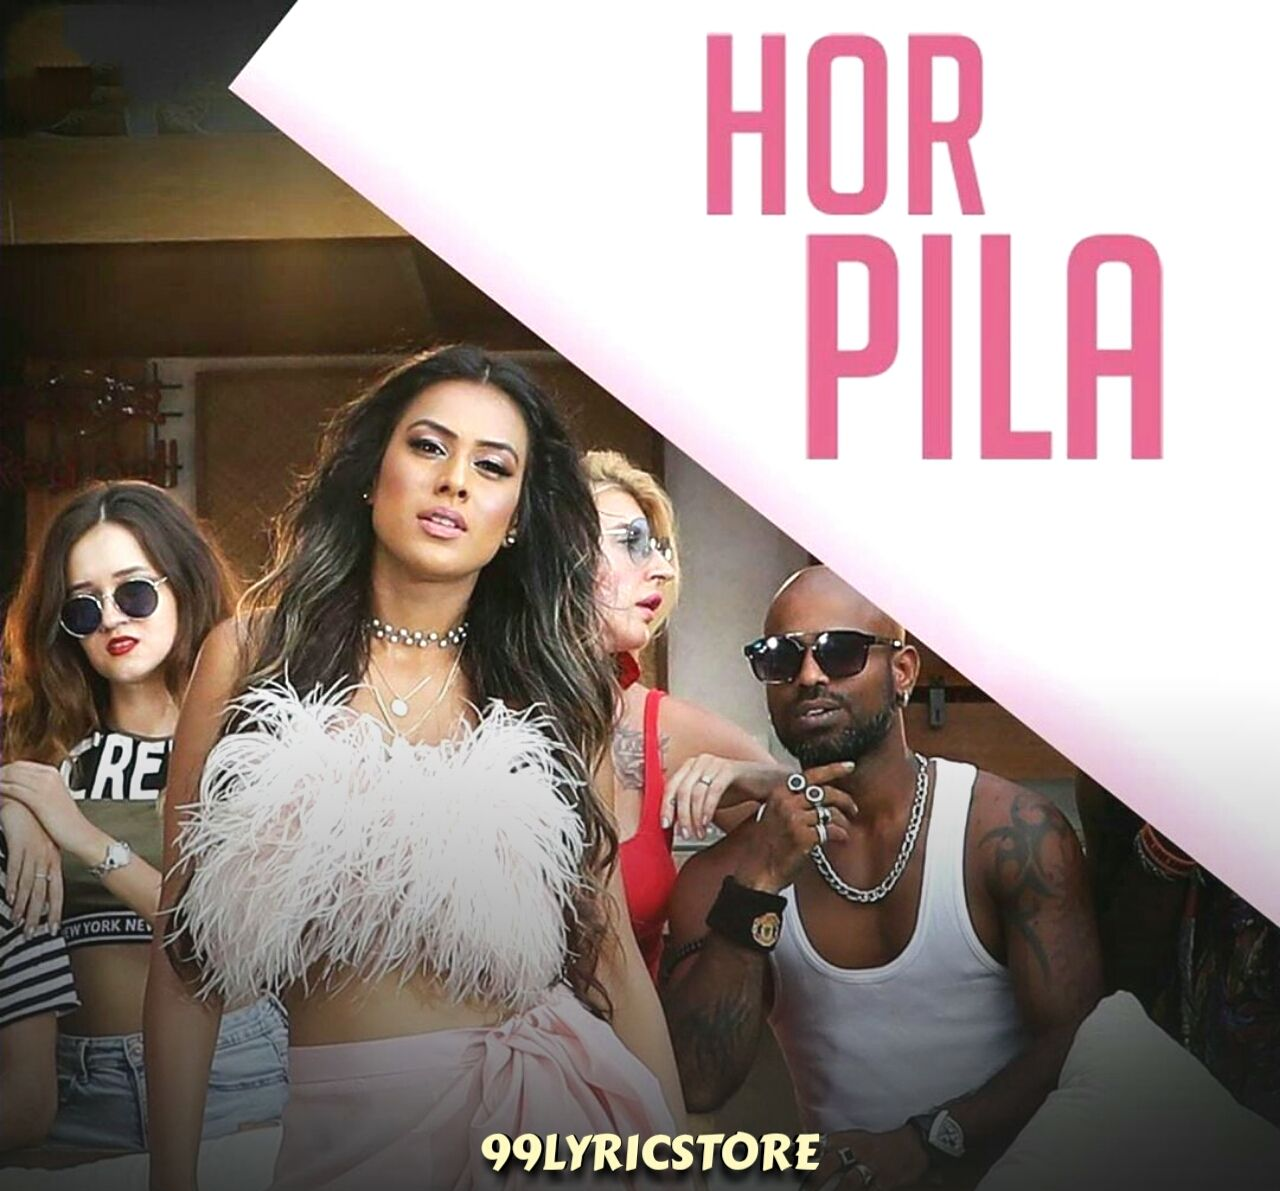 Hor Pila Punjabi Song Lyrics sung by Jyotika Tangri ft. Nia Sharma